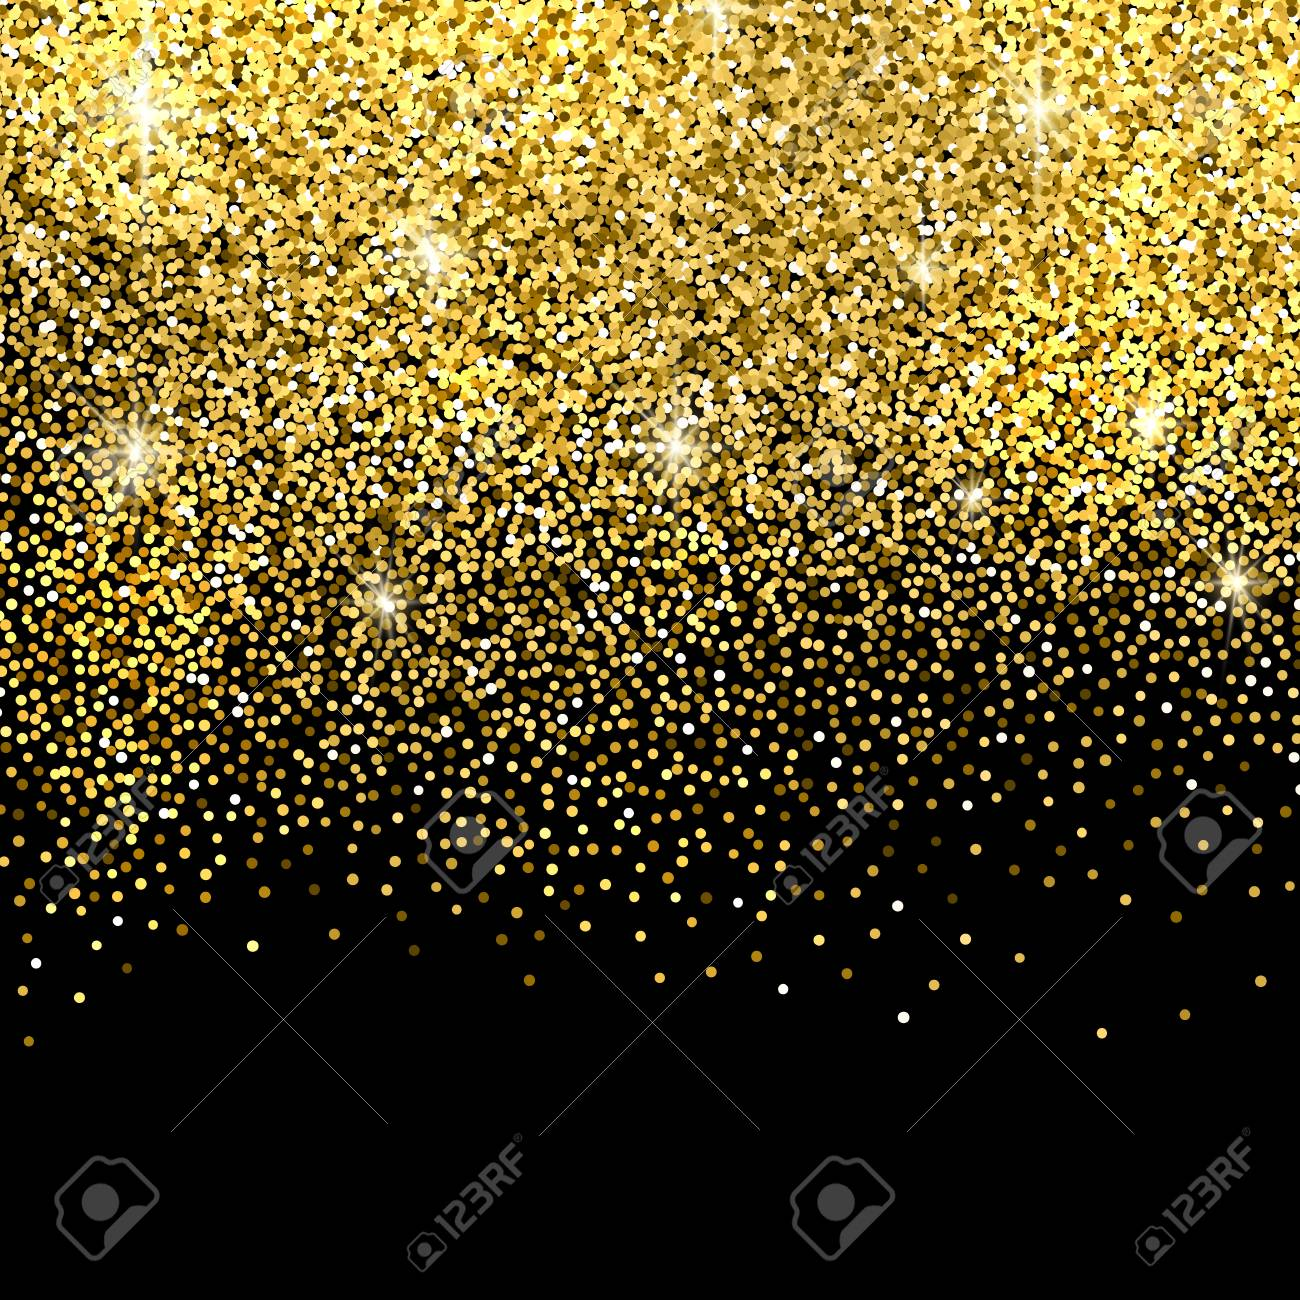 Gold Sparkles On Black Background. Gold Glitter Background. Royalty Free  Cliparts, Vectors, And Stock Illustration. Image 50380500.